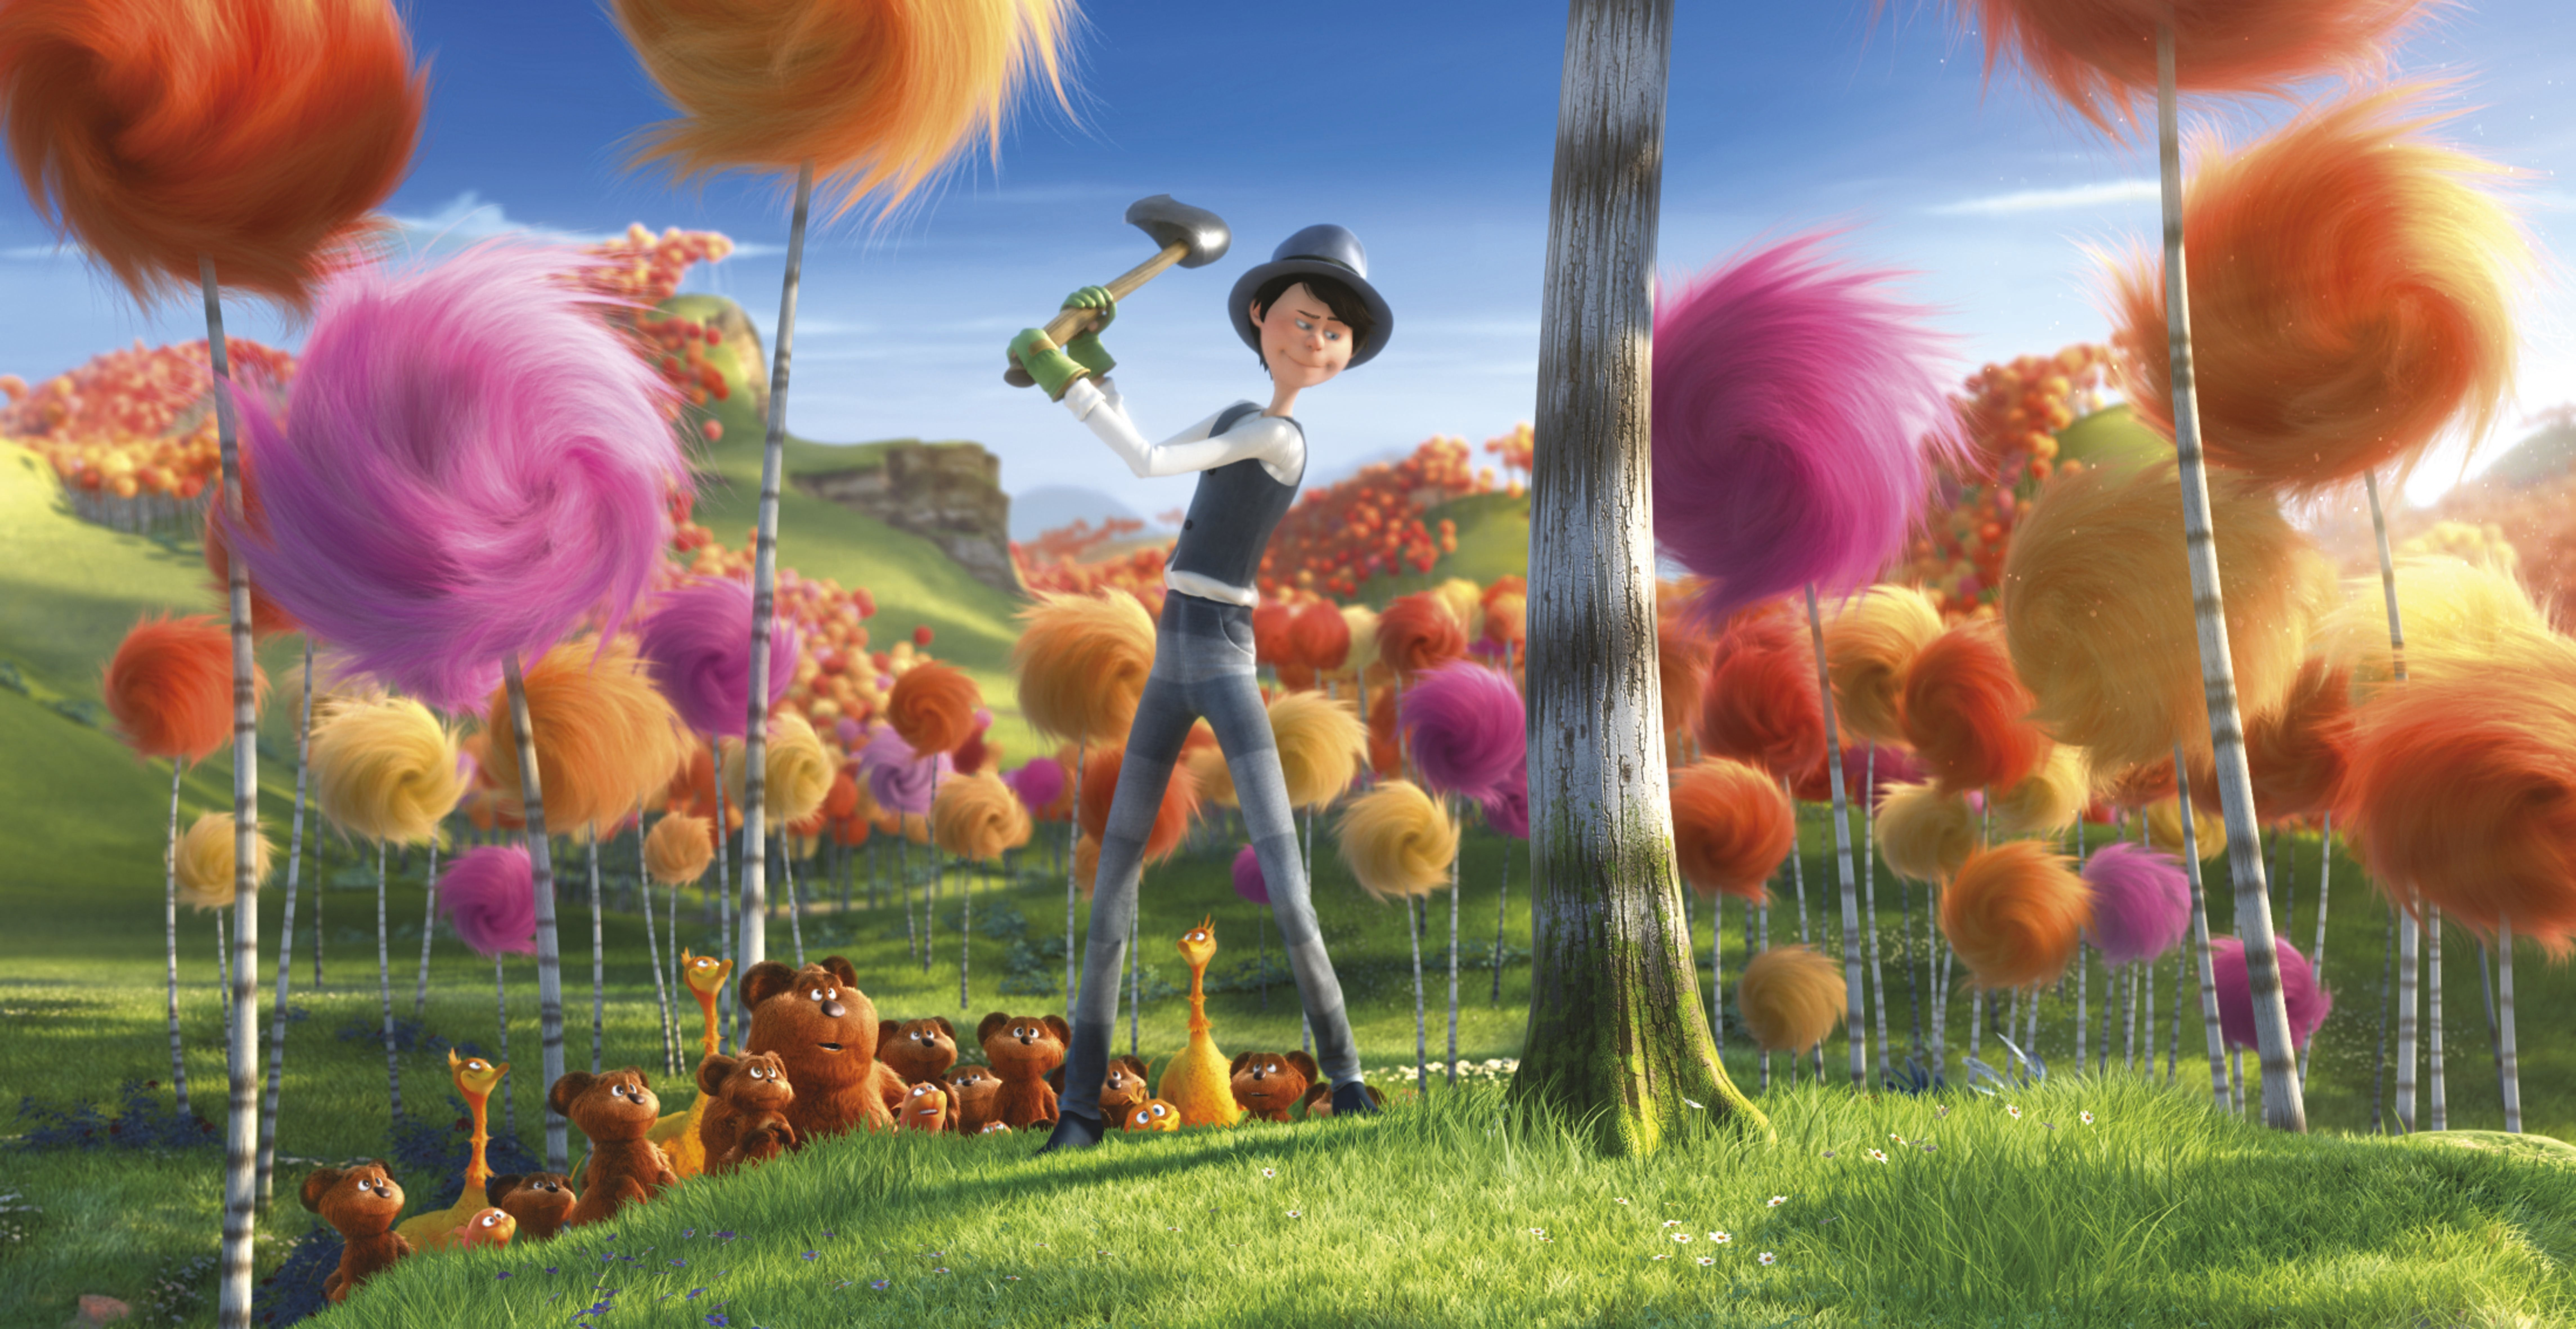 THE LORAX Movie Image Once-ler   Collider